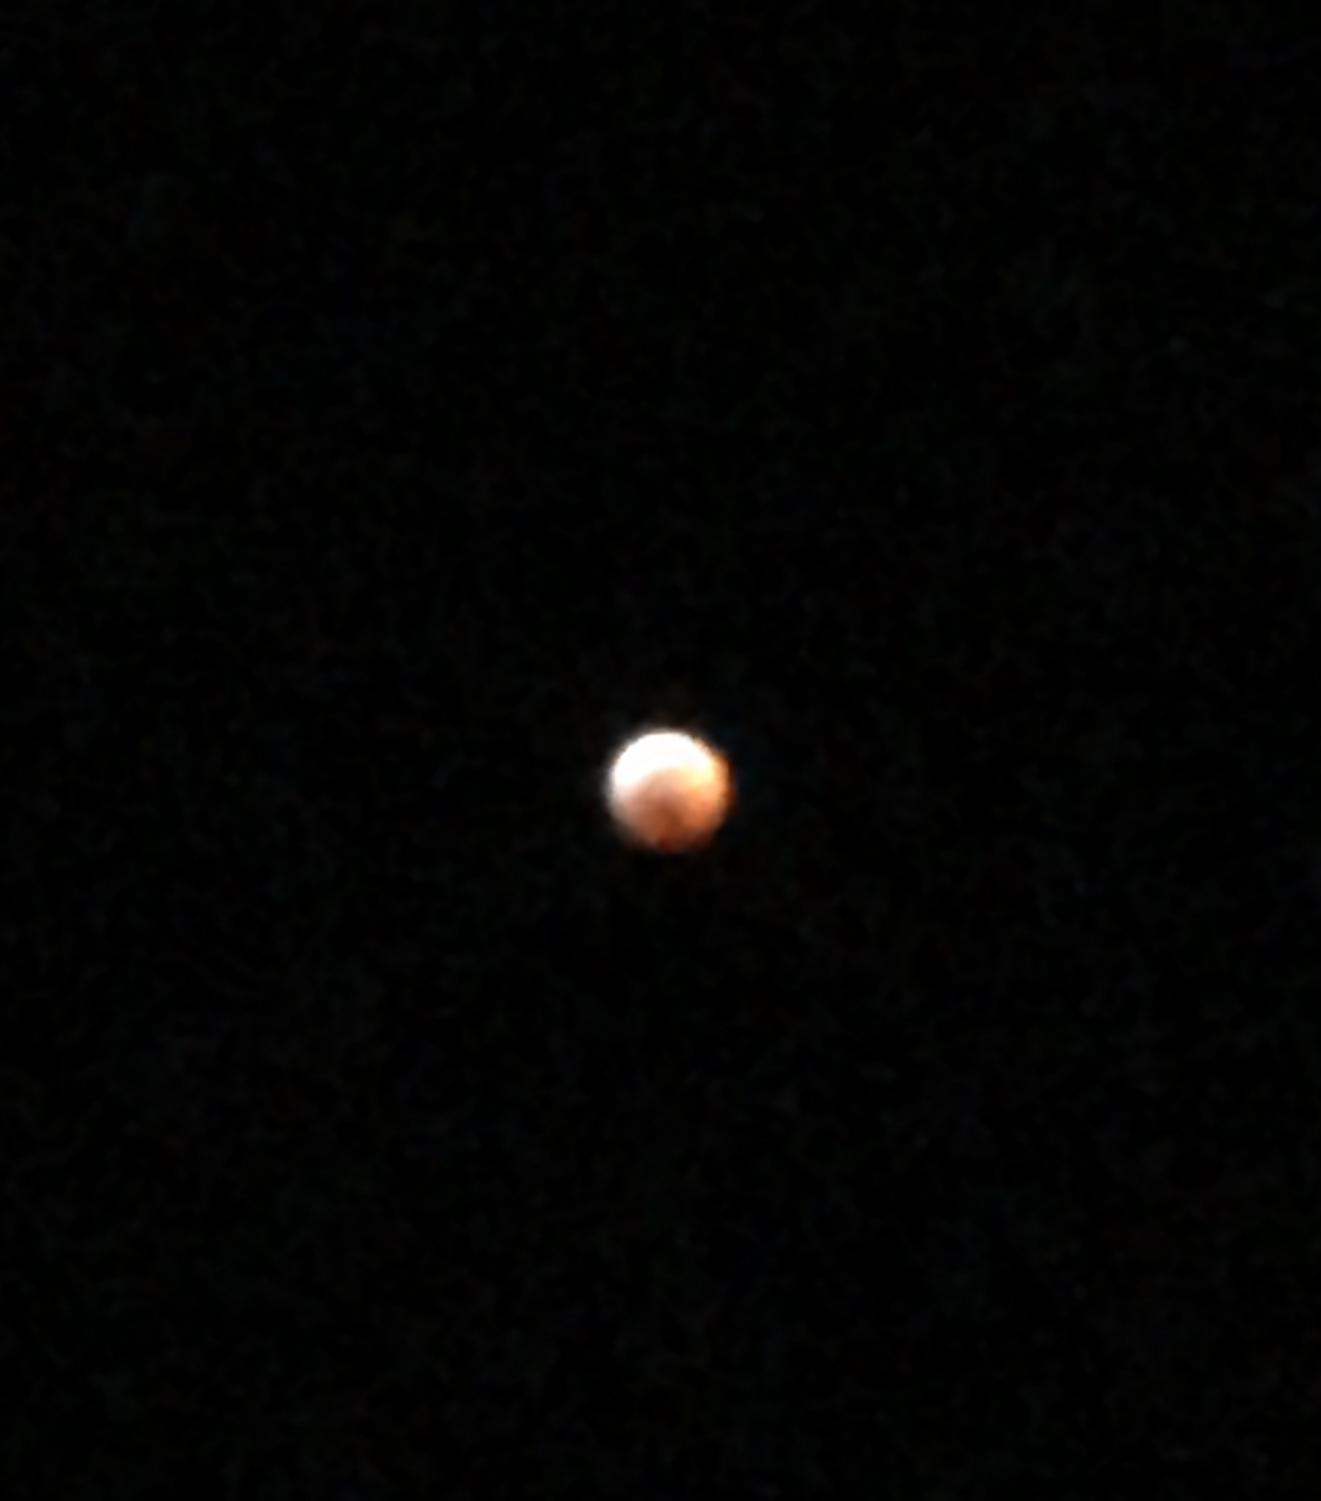 The moon turns red during a lunar eclipse on January 20th, 2019!